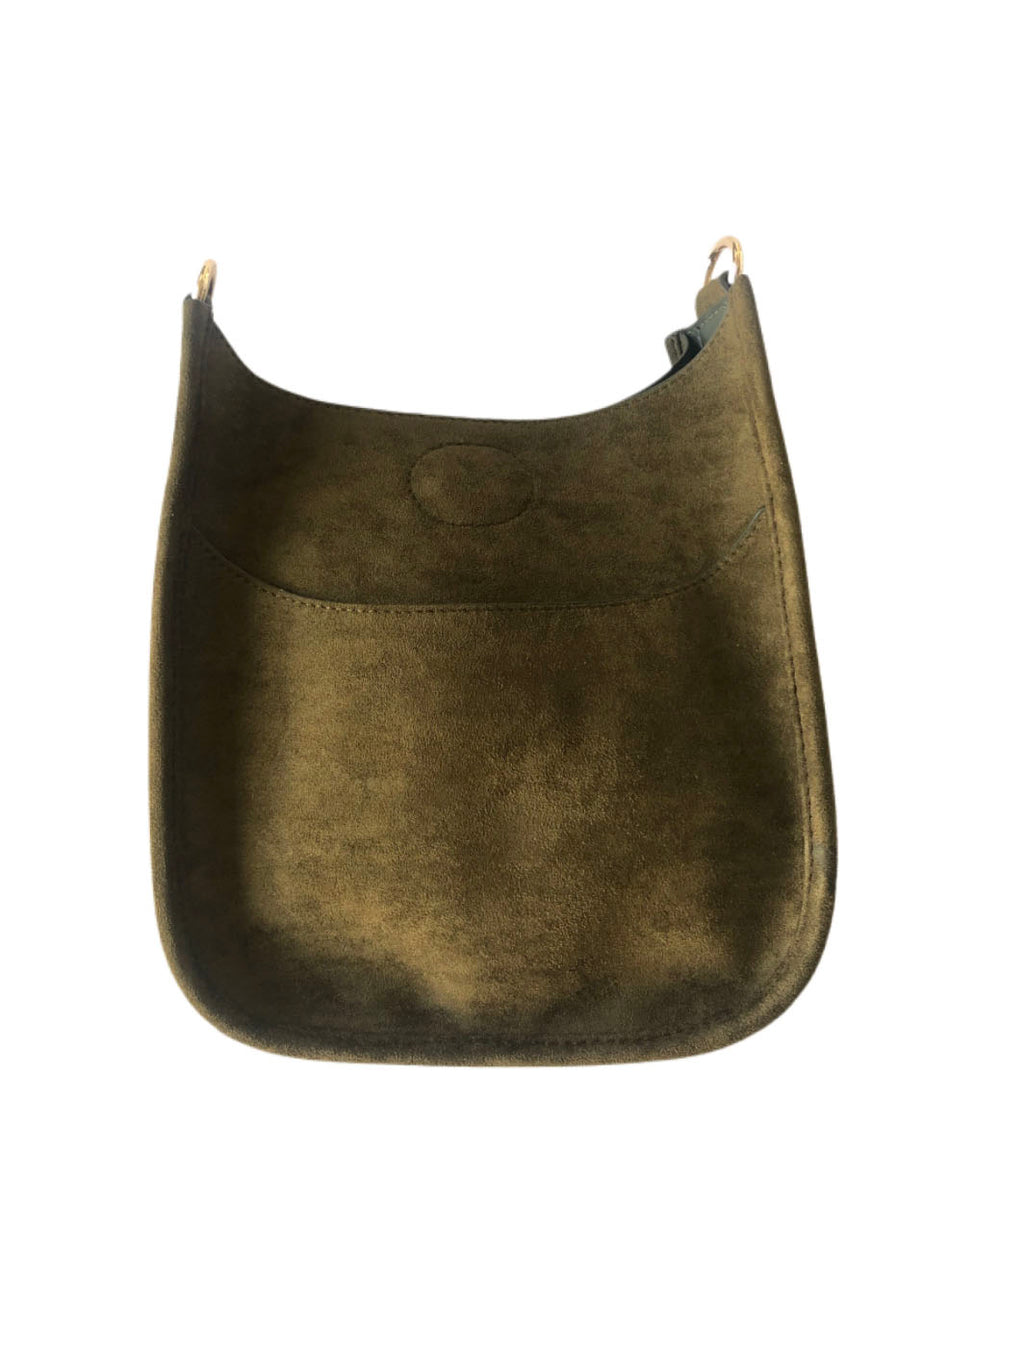 Ahdorned Mini Vegan Suede Messenger Bag in Army--No Strap!